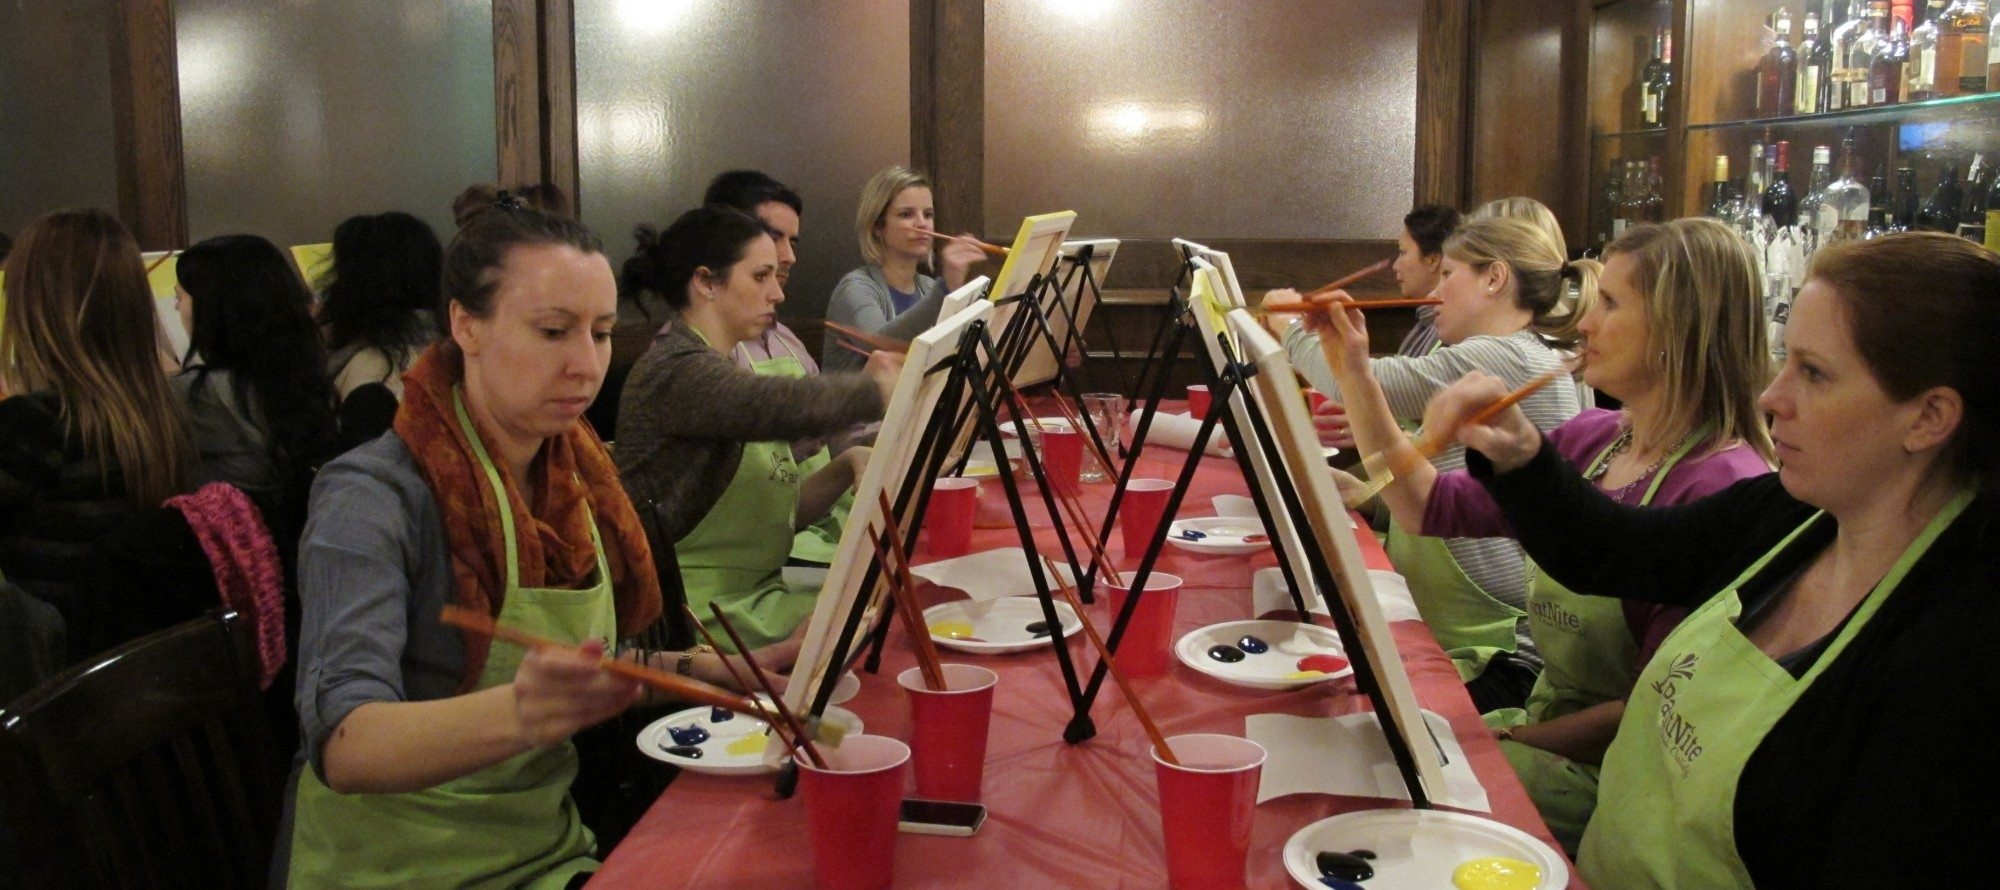 WEB EXCLUSIVE: Paint Nite brings rookie artists, friends, and couples to local pubs